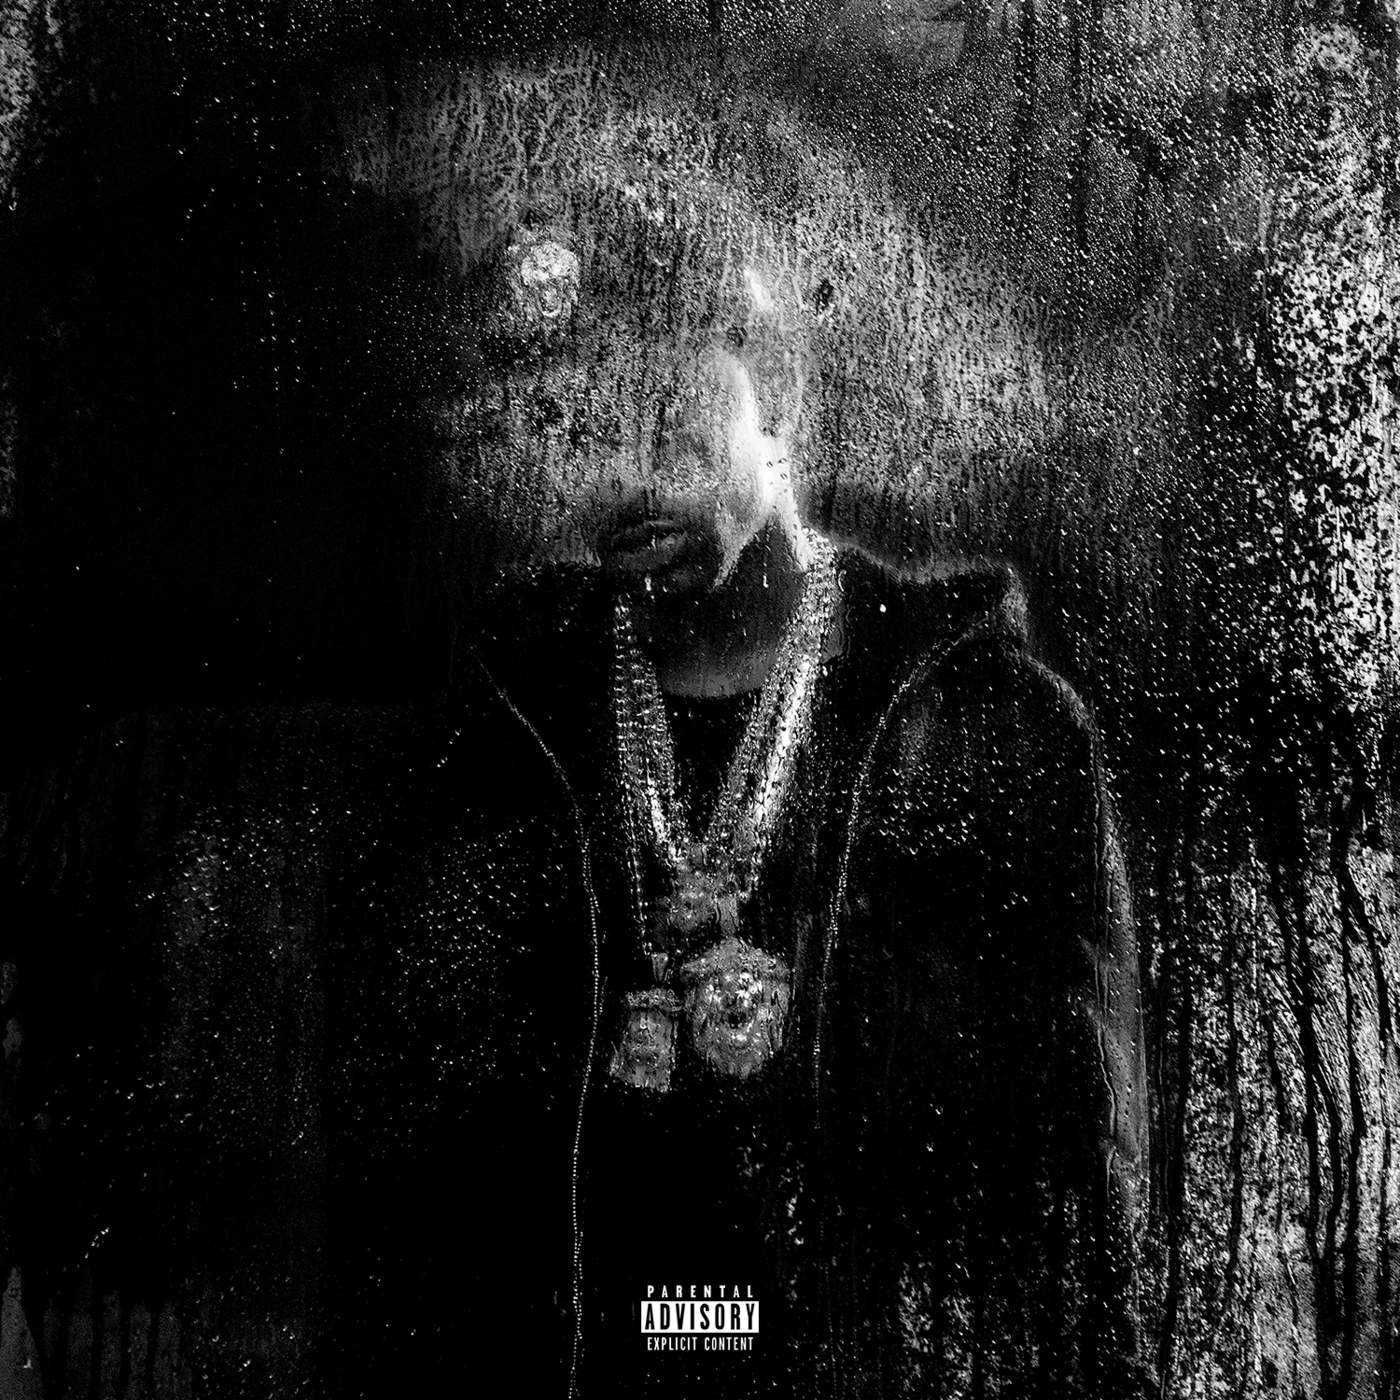 Big Sean - Blessings (Extended Version) [feat. Drake & Kanye West] - Single Cover